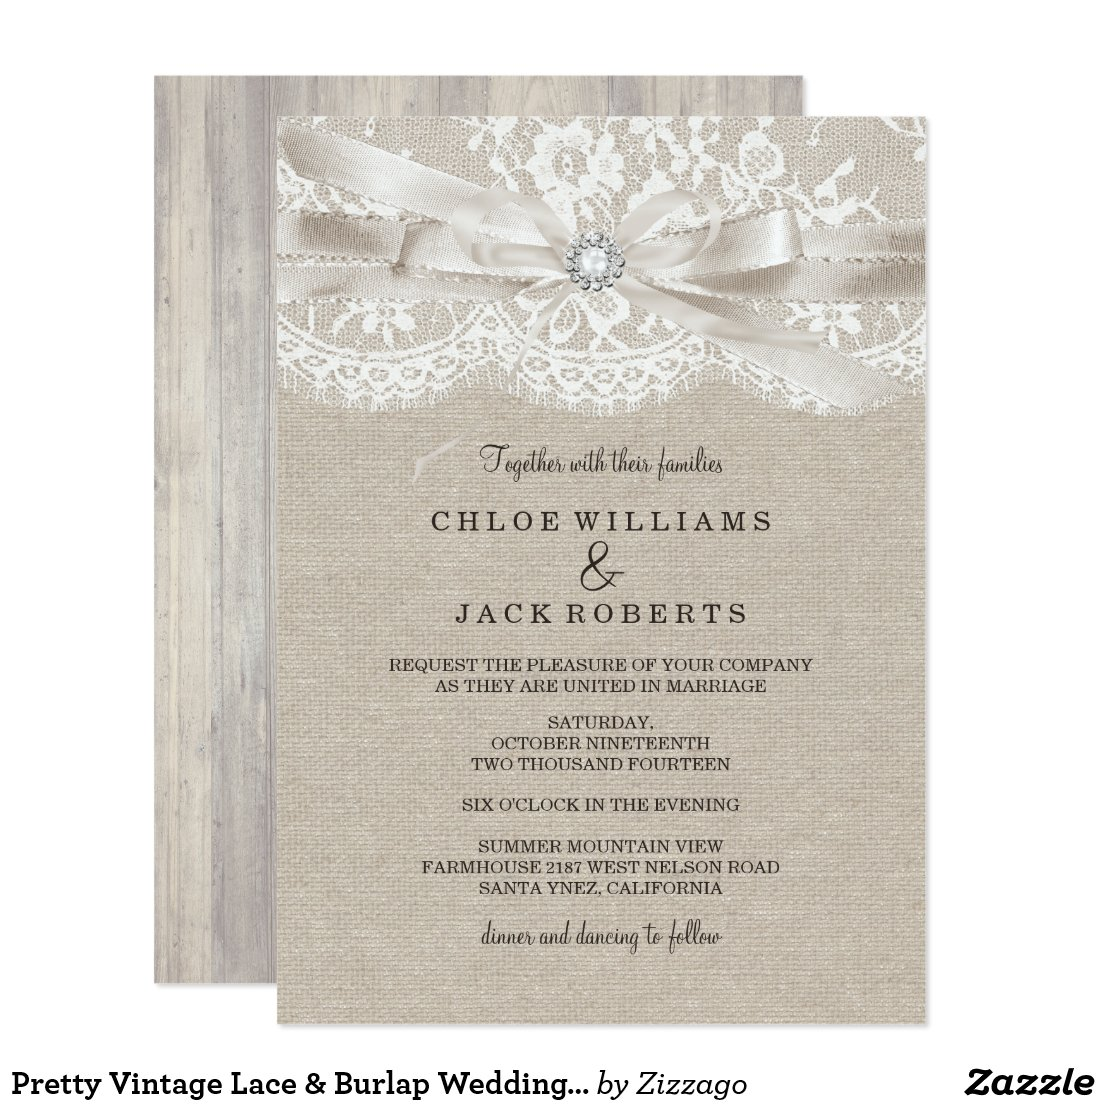 Pretty Vintage Lace & Burlap Wedding Invitation